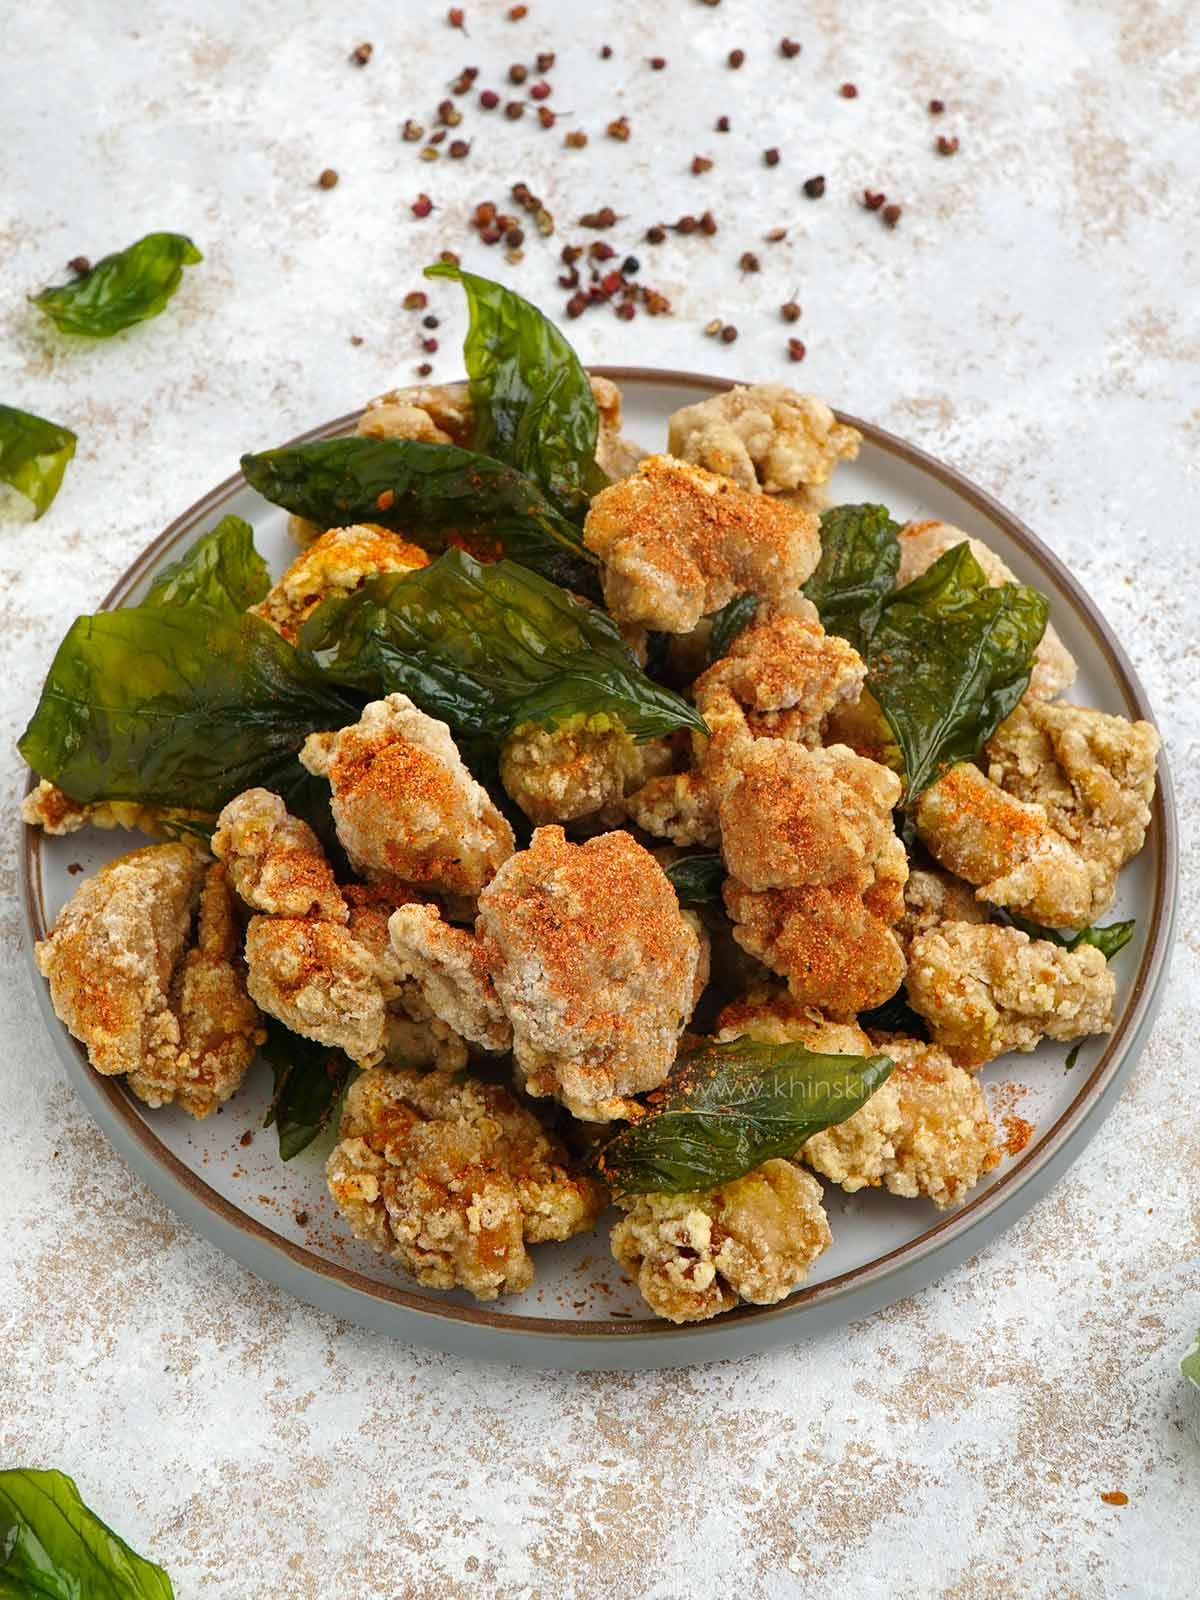 Taiwanese popcorn chicken with basil leaves in the grey plate.